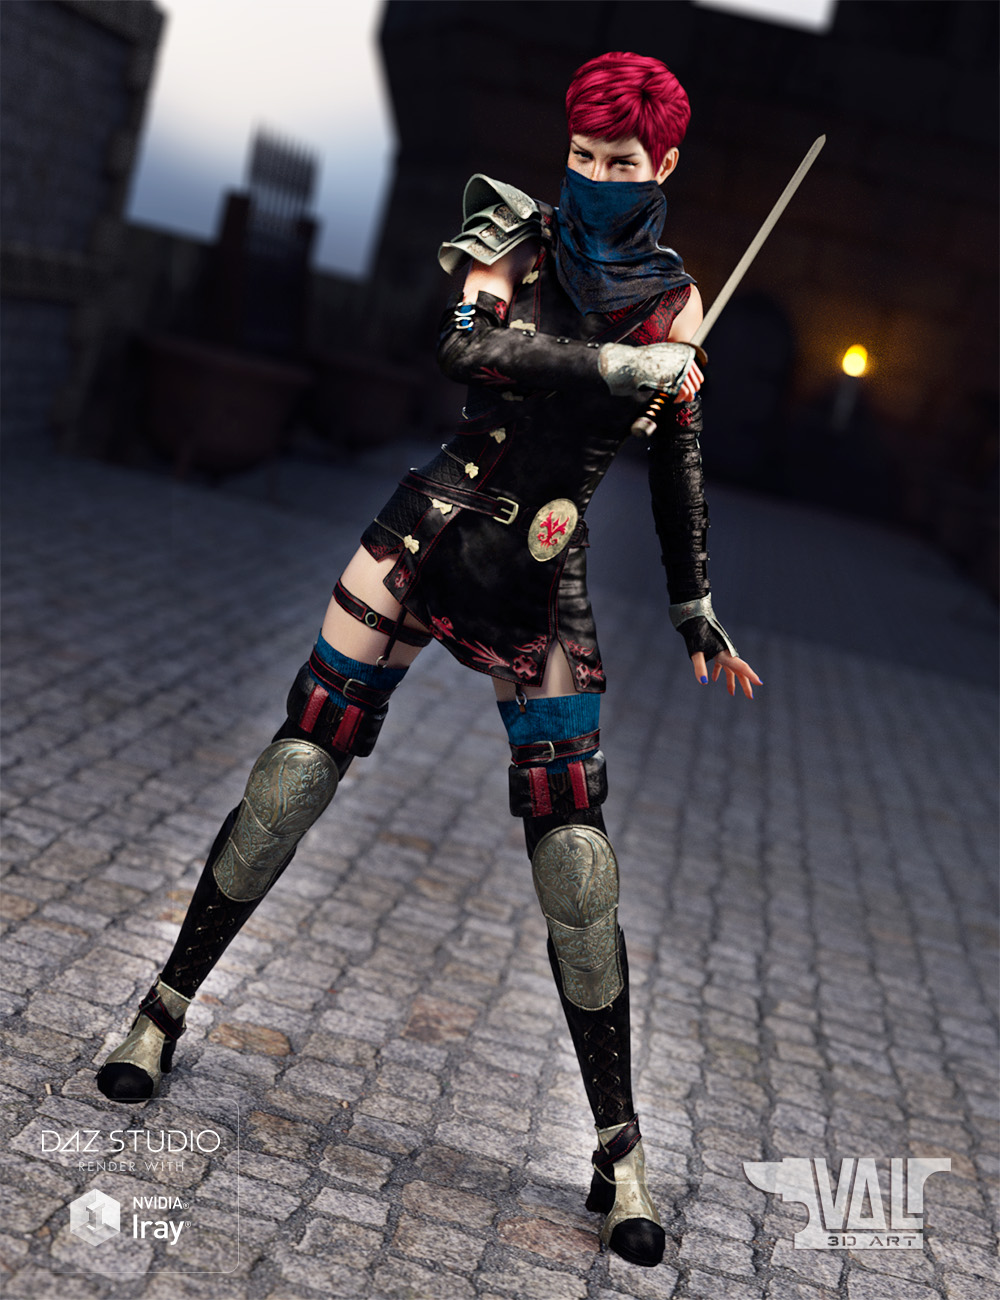 Lethal Whisper Outfit and Poses for Genesis 8 Female and Victoria 8 by: Val3dart, 3D Models by Daz 3D